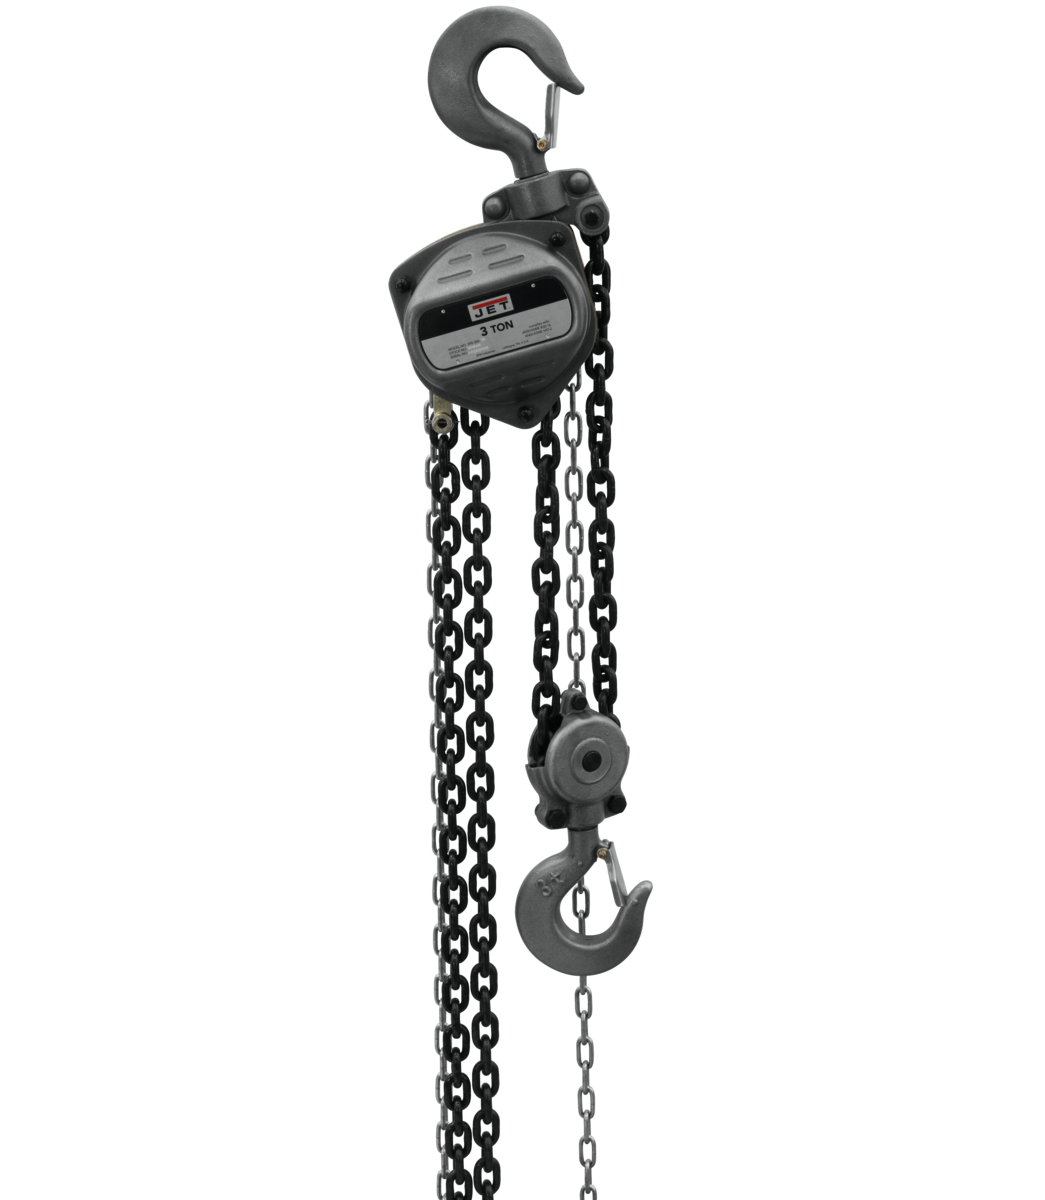 S90-300-15, 3-Ton Hand Chain Hoist With 15' Lift